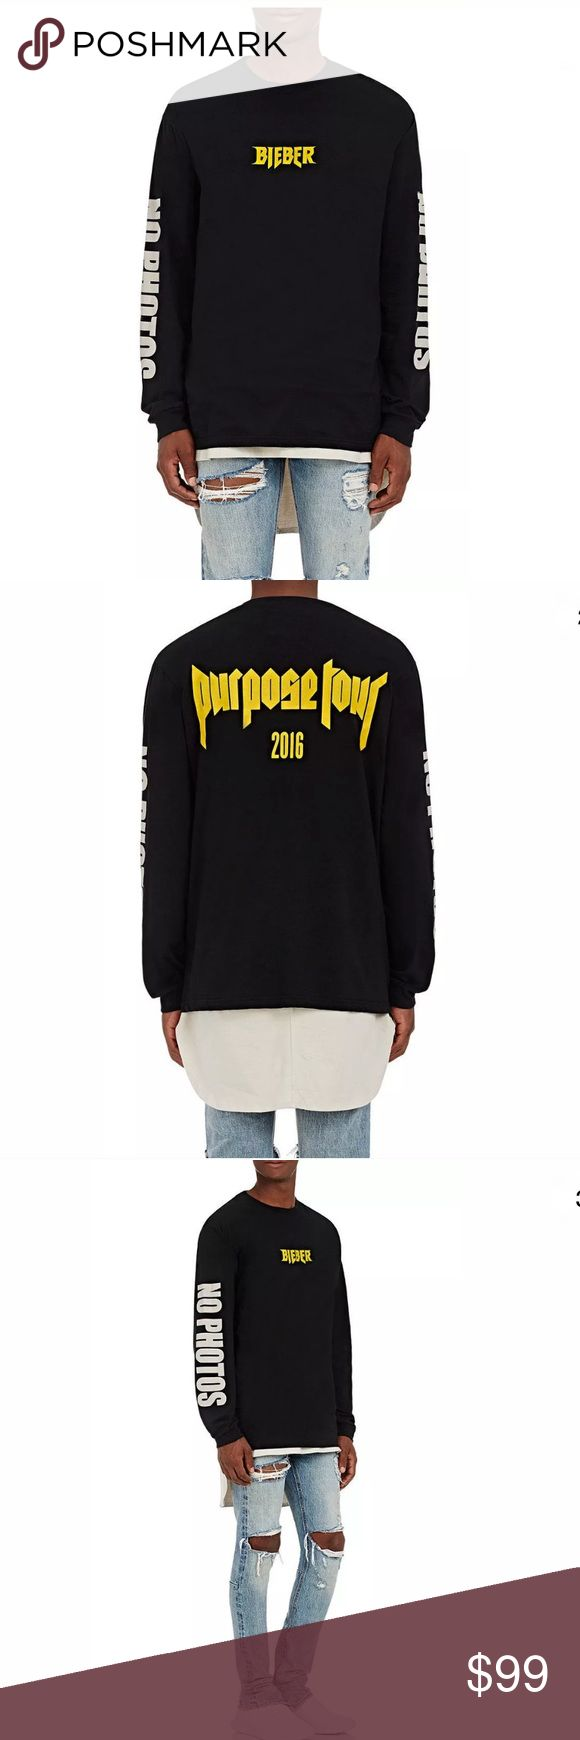 Justin Bieber Barneys Purpose Tour Shirt BrandJustin Bieber Barney's Exclusive Purpose Tour Long Sleeve T-Shirt Size Medium. This is 100% Authentic! I can provide picture ofReceipt upon request. Don't be fooled by all the FAKE purpose shirts oneBayfrom PACSUN, H&M & China. The Purpose TourMerchandisewas Exclusive Collab with Barneys.Be one of the few to own this Barney's Justin Bieber Collab Shirt.Check Out Our eBay Store We Have Other Purpose TourMerchandise. Any questions please…